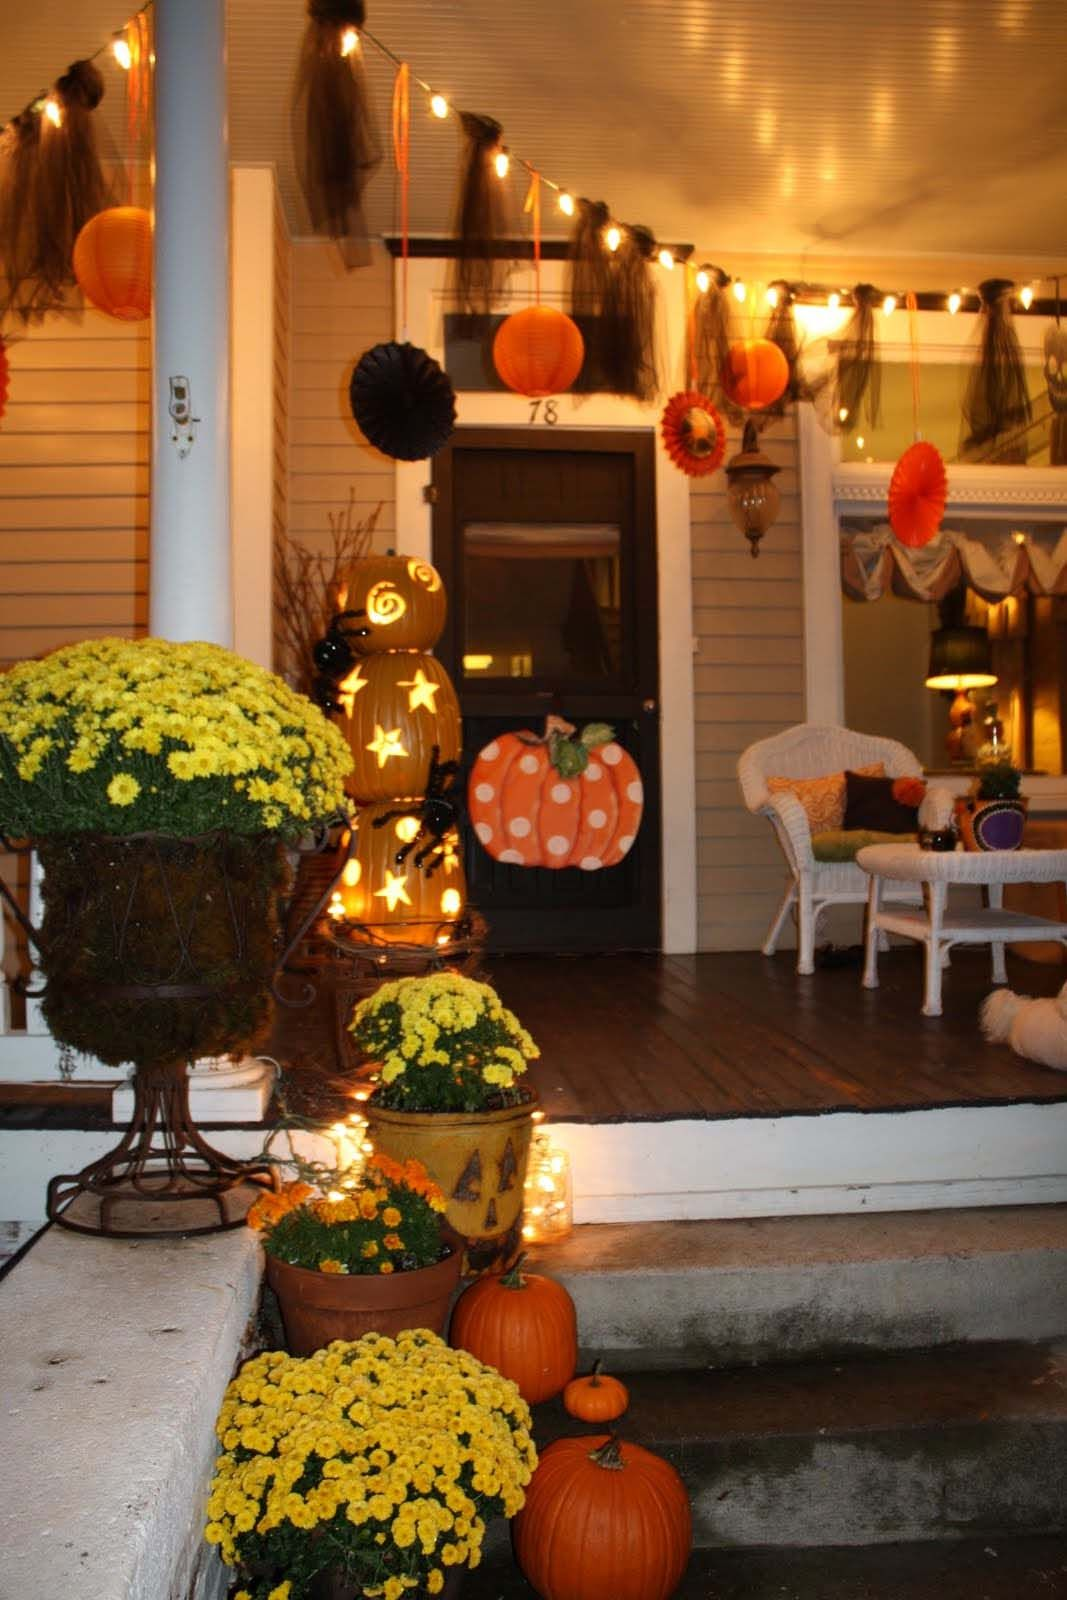 46 of the Coziest Ways to Decorate your Outdoor Spaces for Fall - Decorate For Halloween